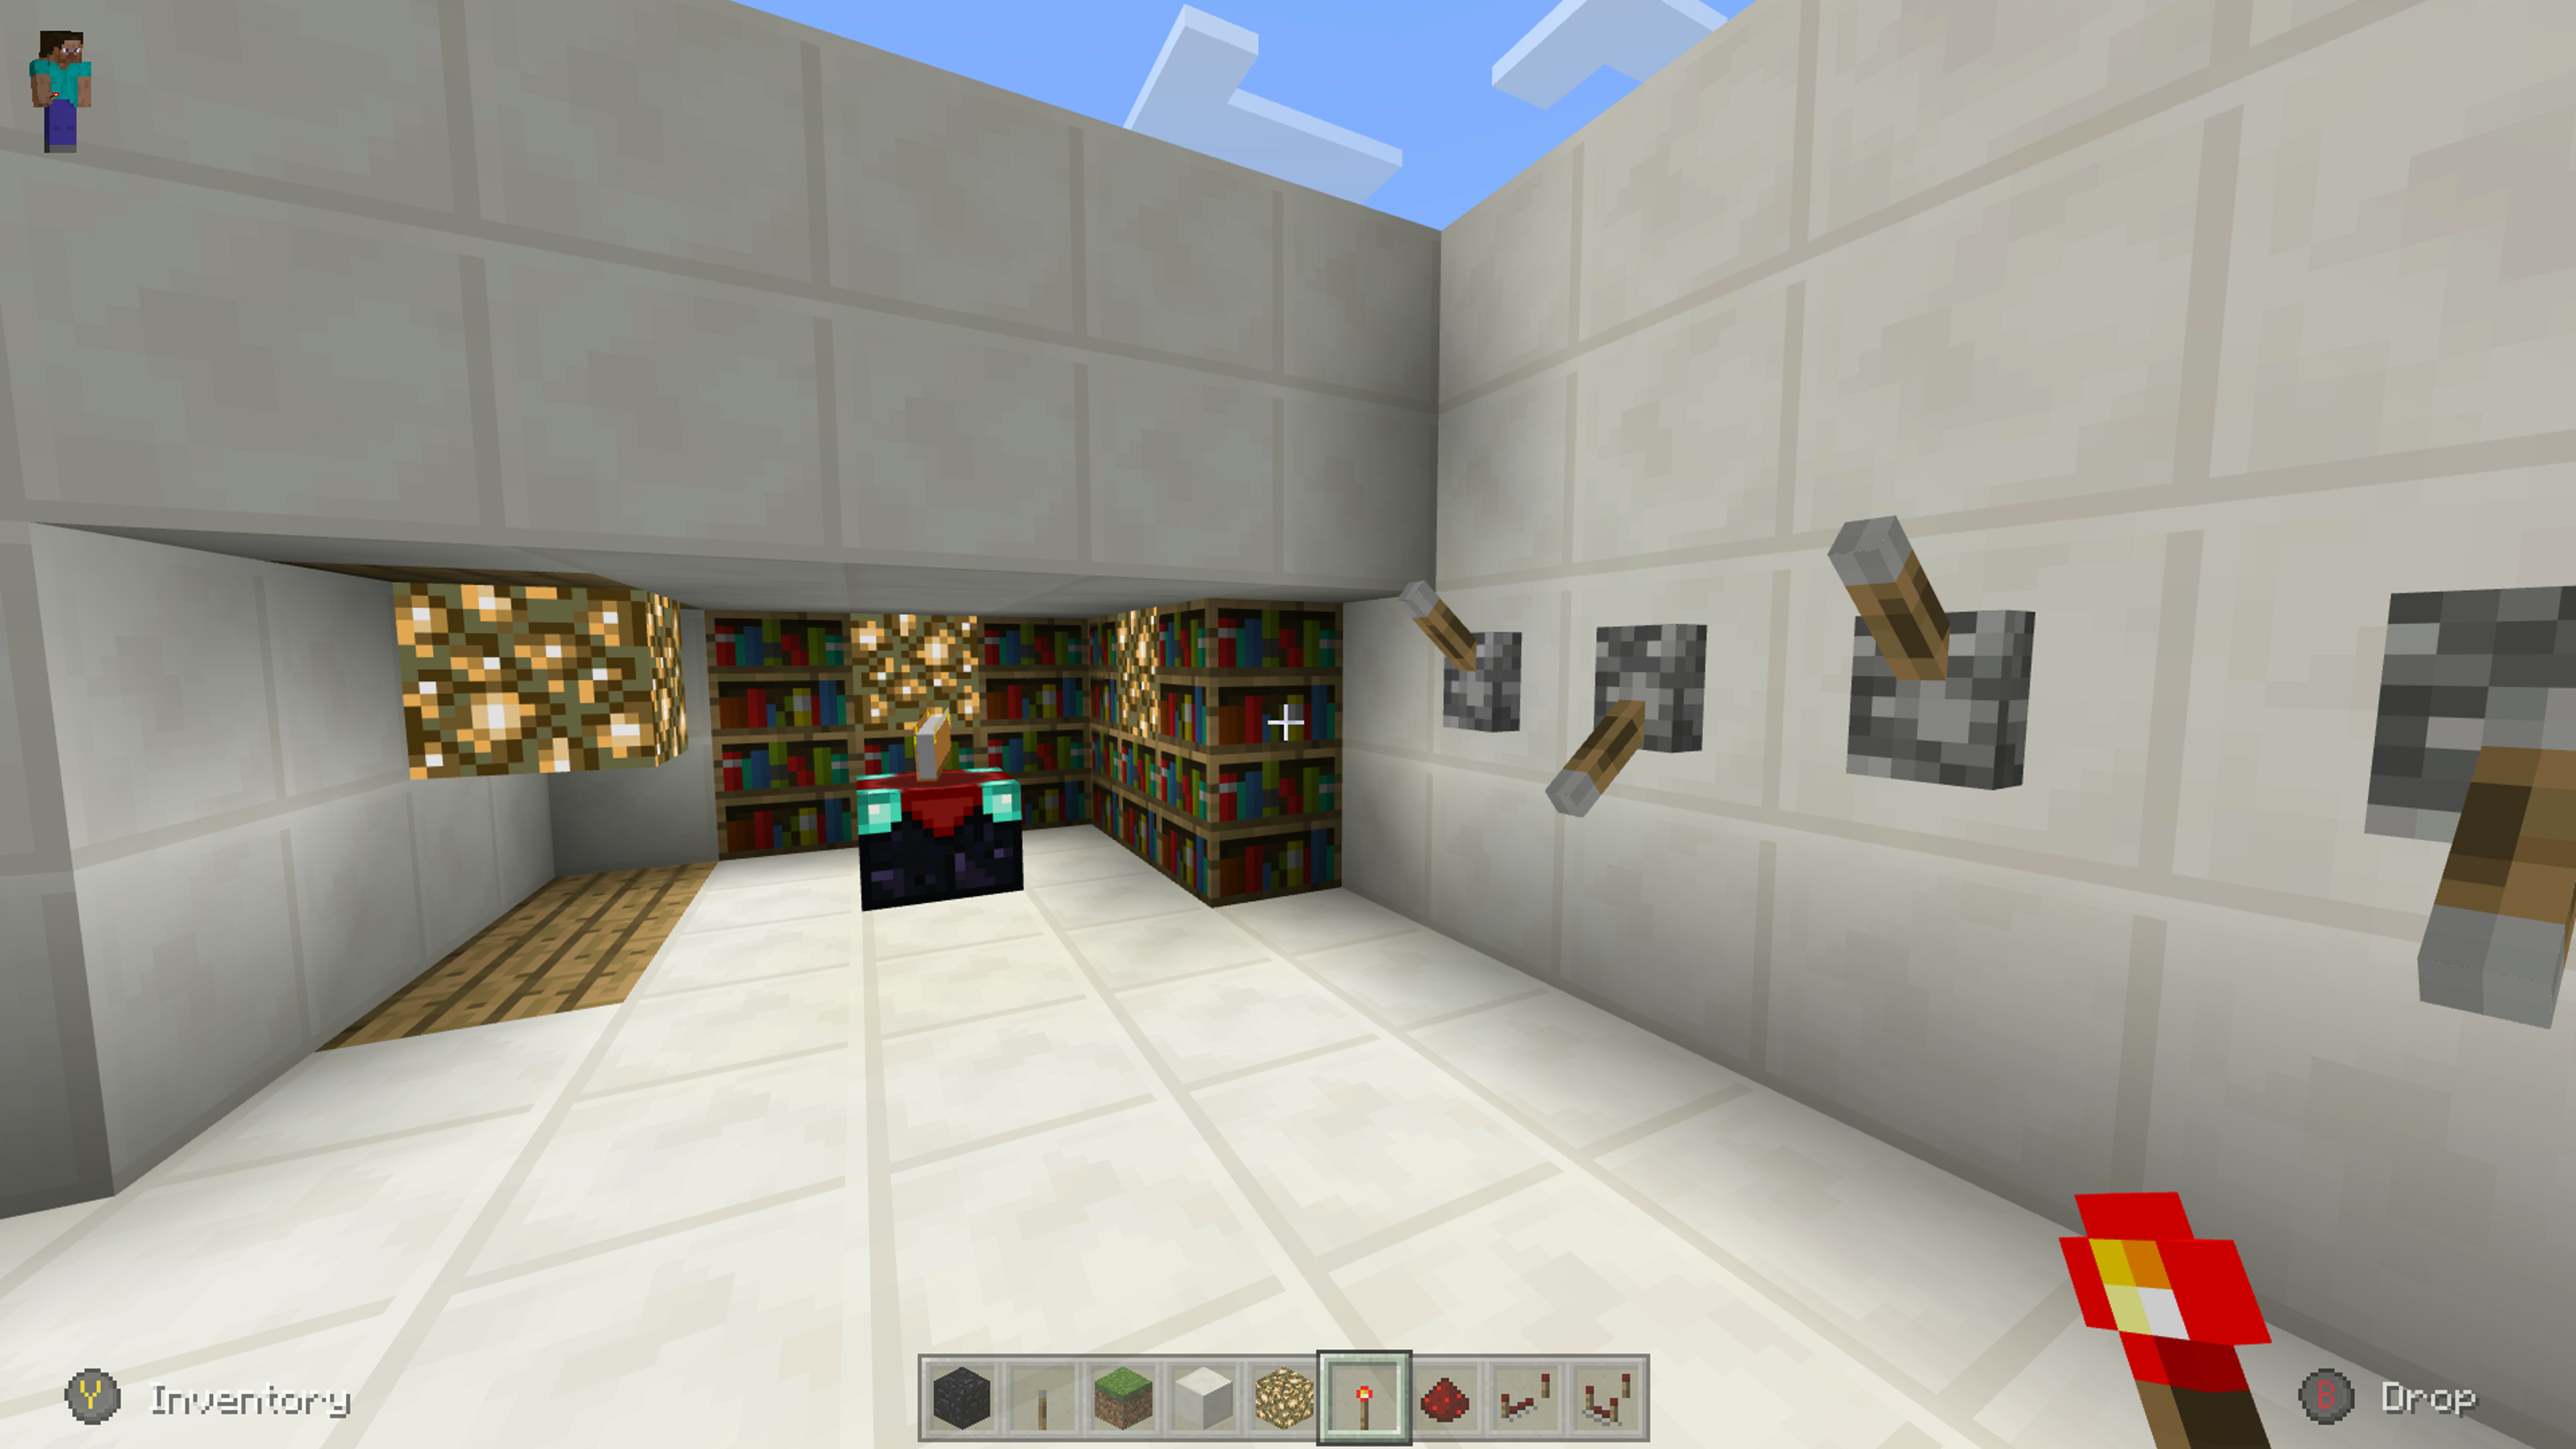 I Built A Variable 0 1 2 15 Bookcases Enchantment Room